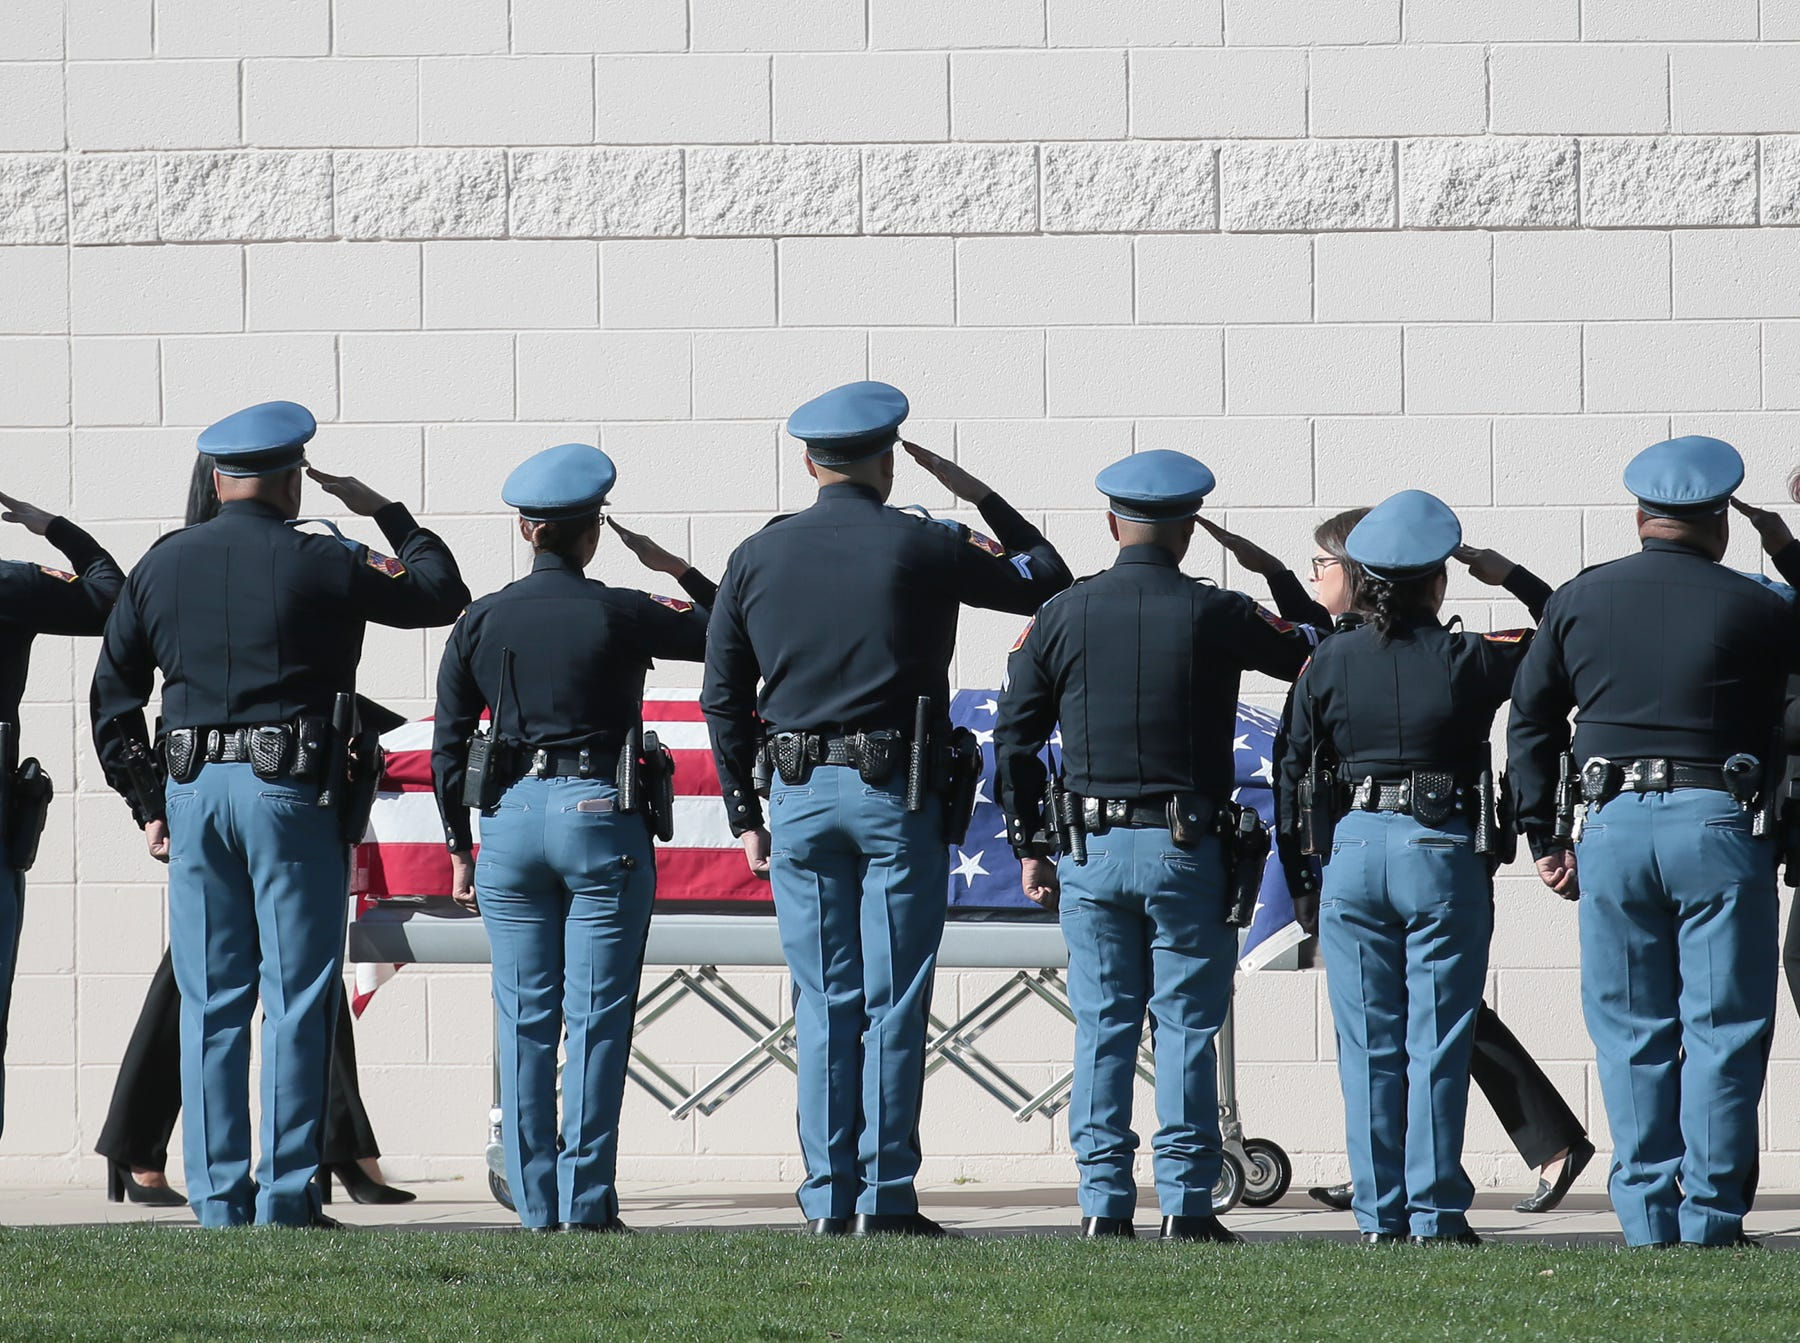 Police officers salute as El Paso County Sheriff's Deputy Peter Herrera's casket moves past at St. Frances Xavier Cabrini Catholic Church on Friday, March 29, 2019.